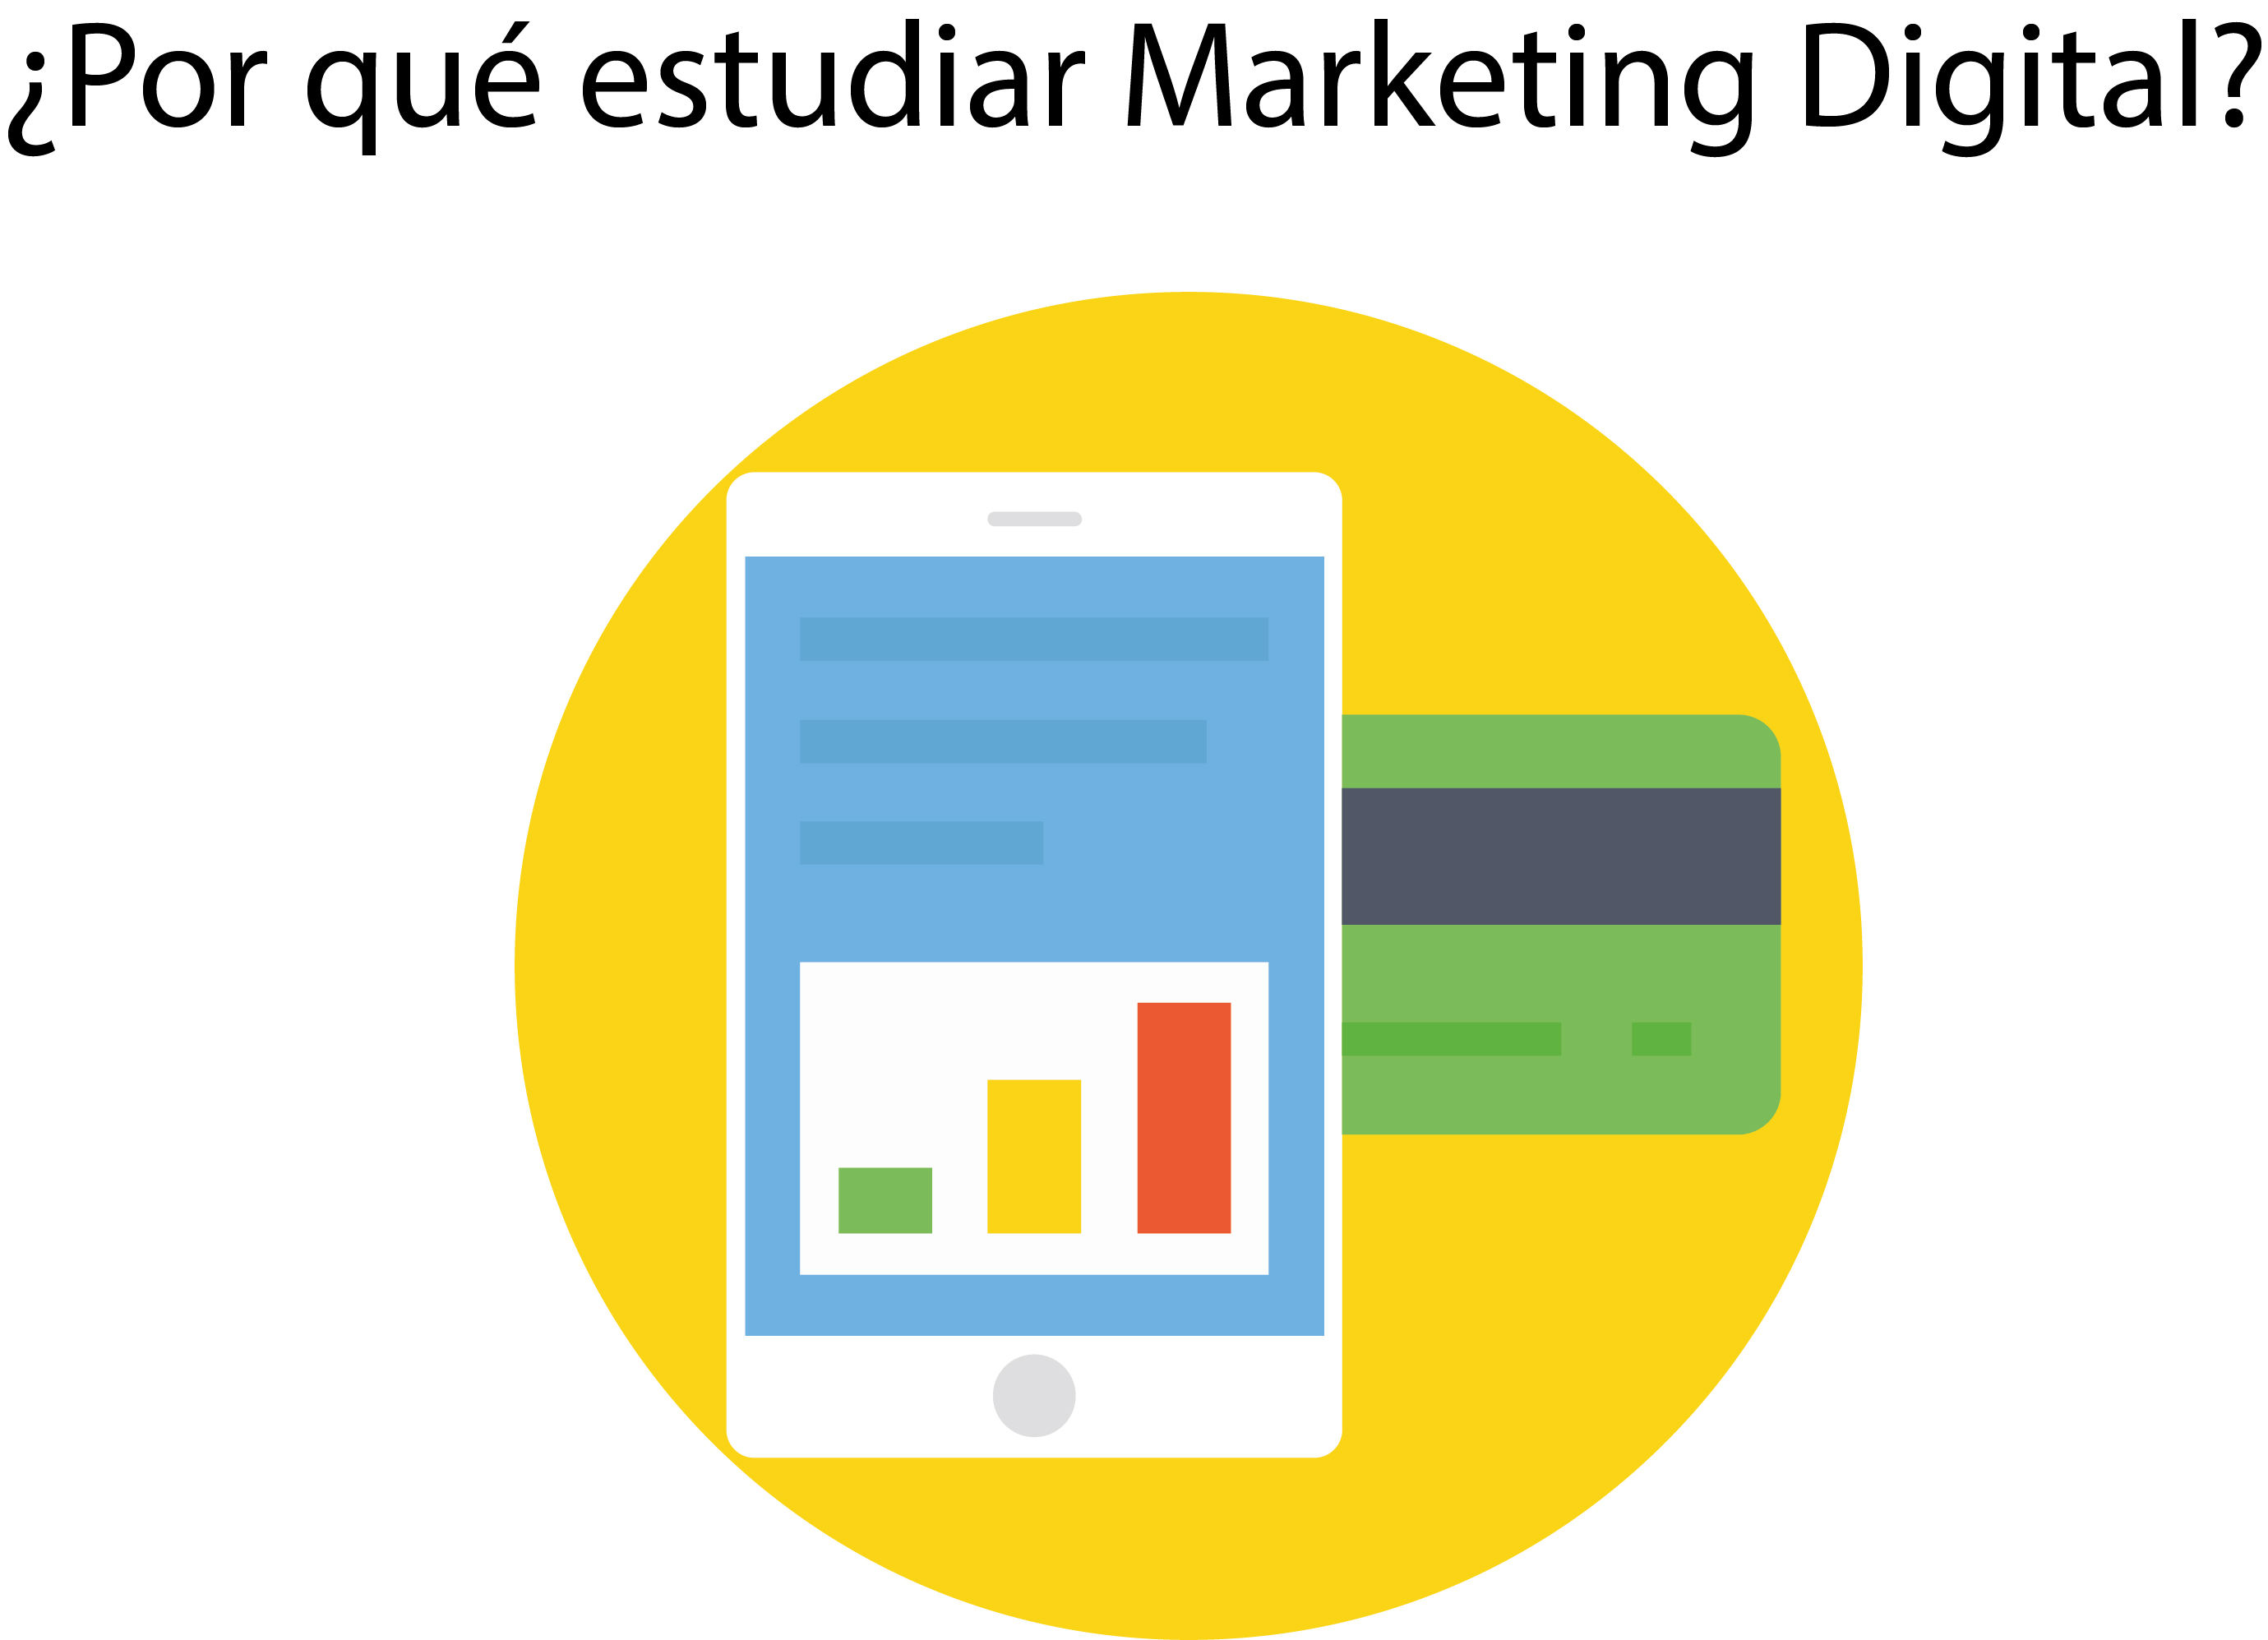 por que estudiar Marketing Digital